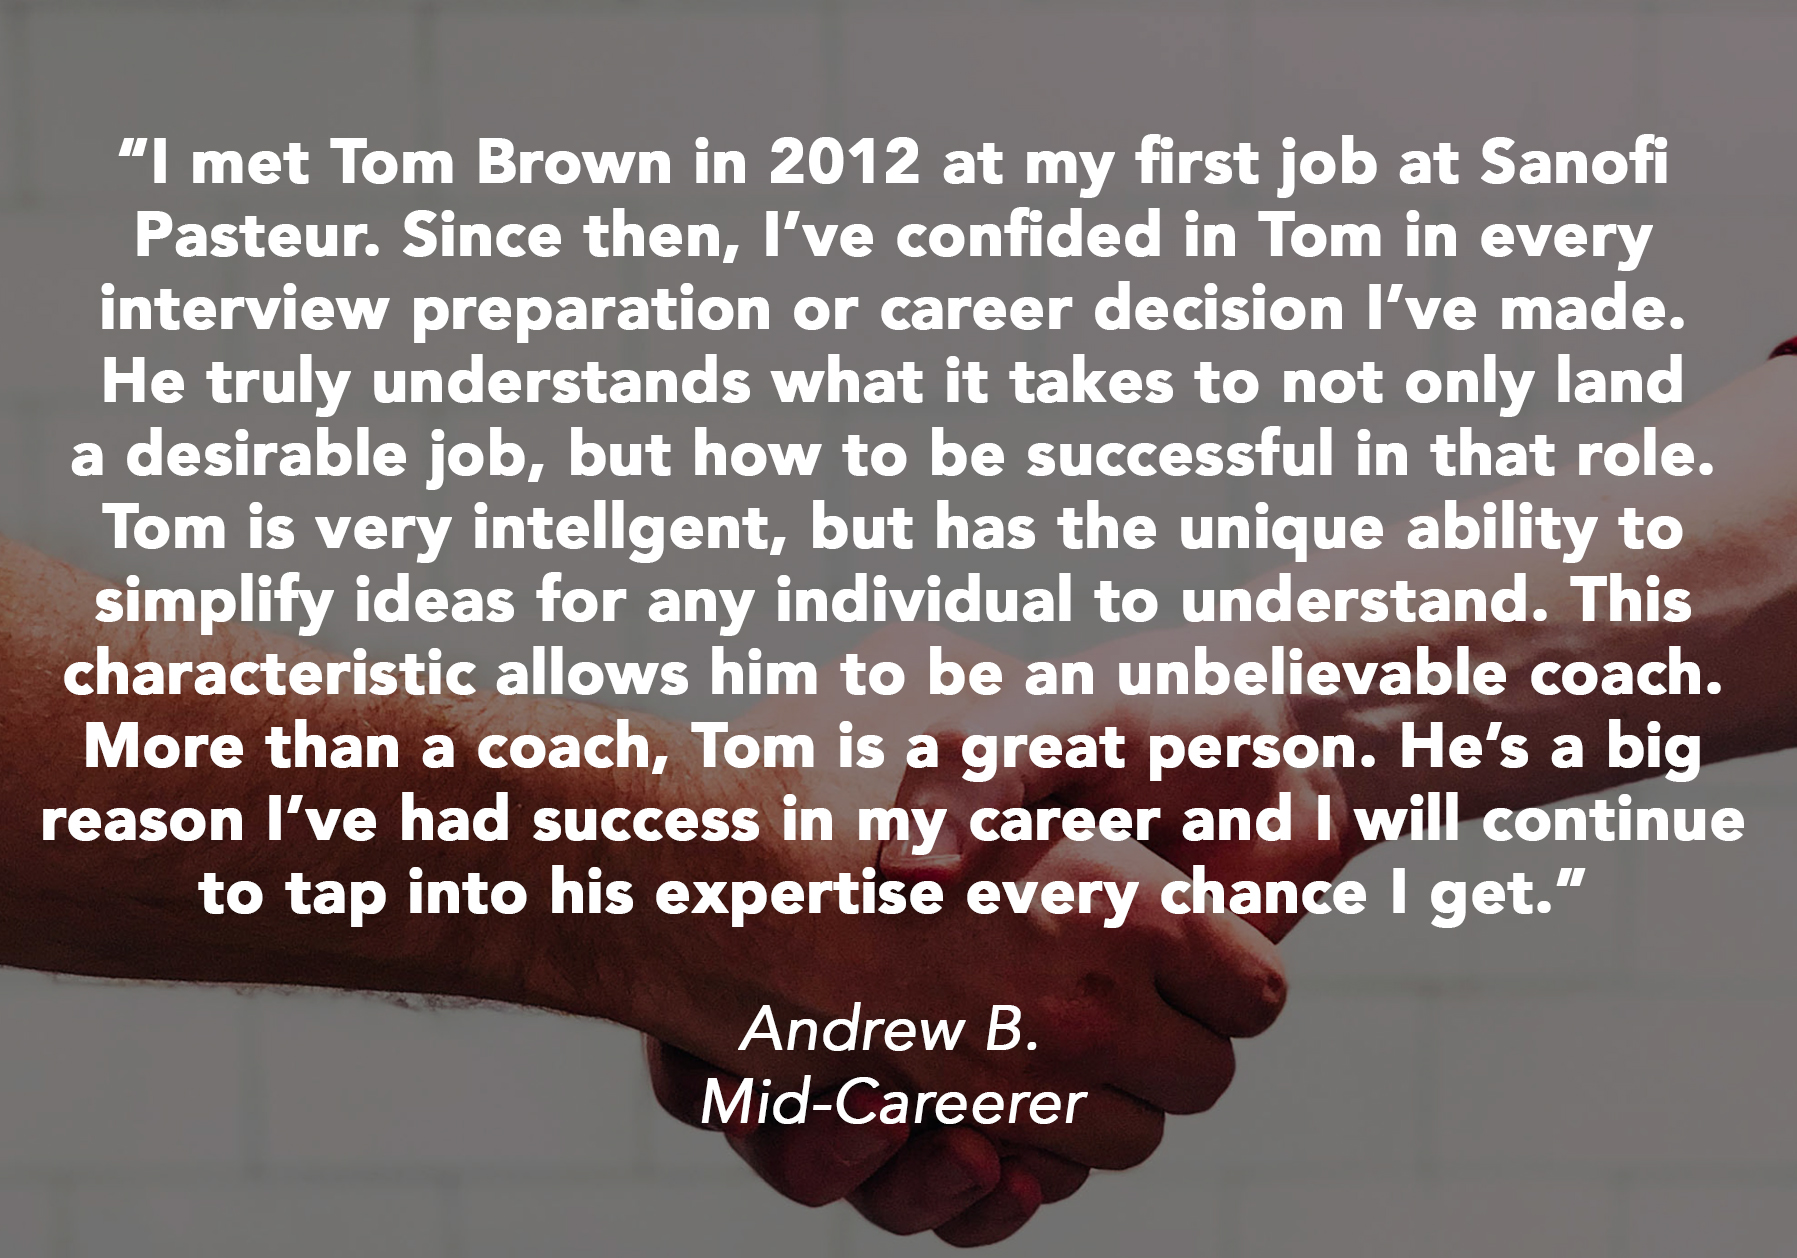 interview coaching solutions job career coach AndrewB.jpg